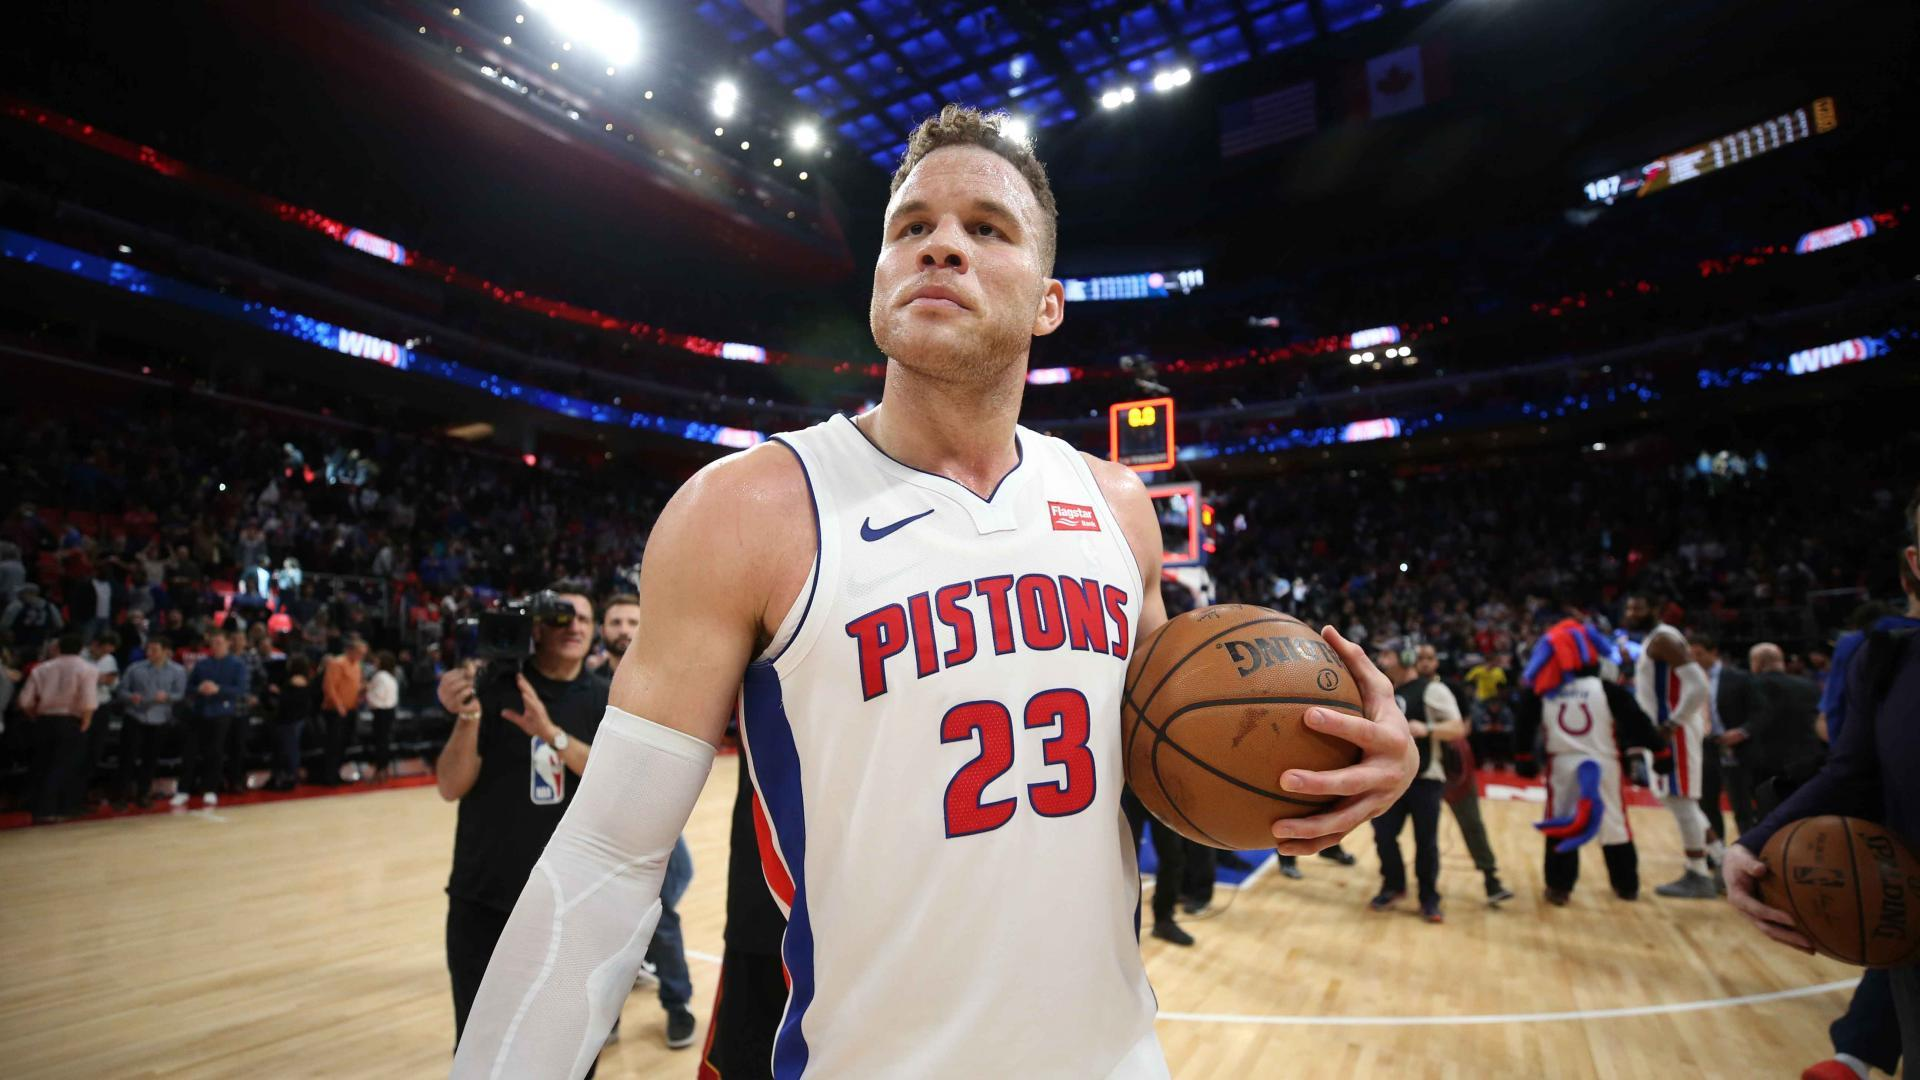 Pistons' win streak clipped by Griffin's former team